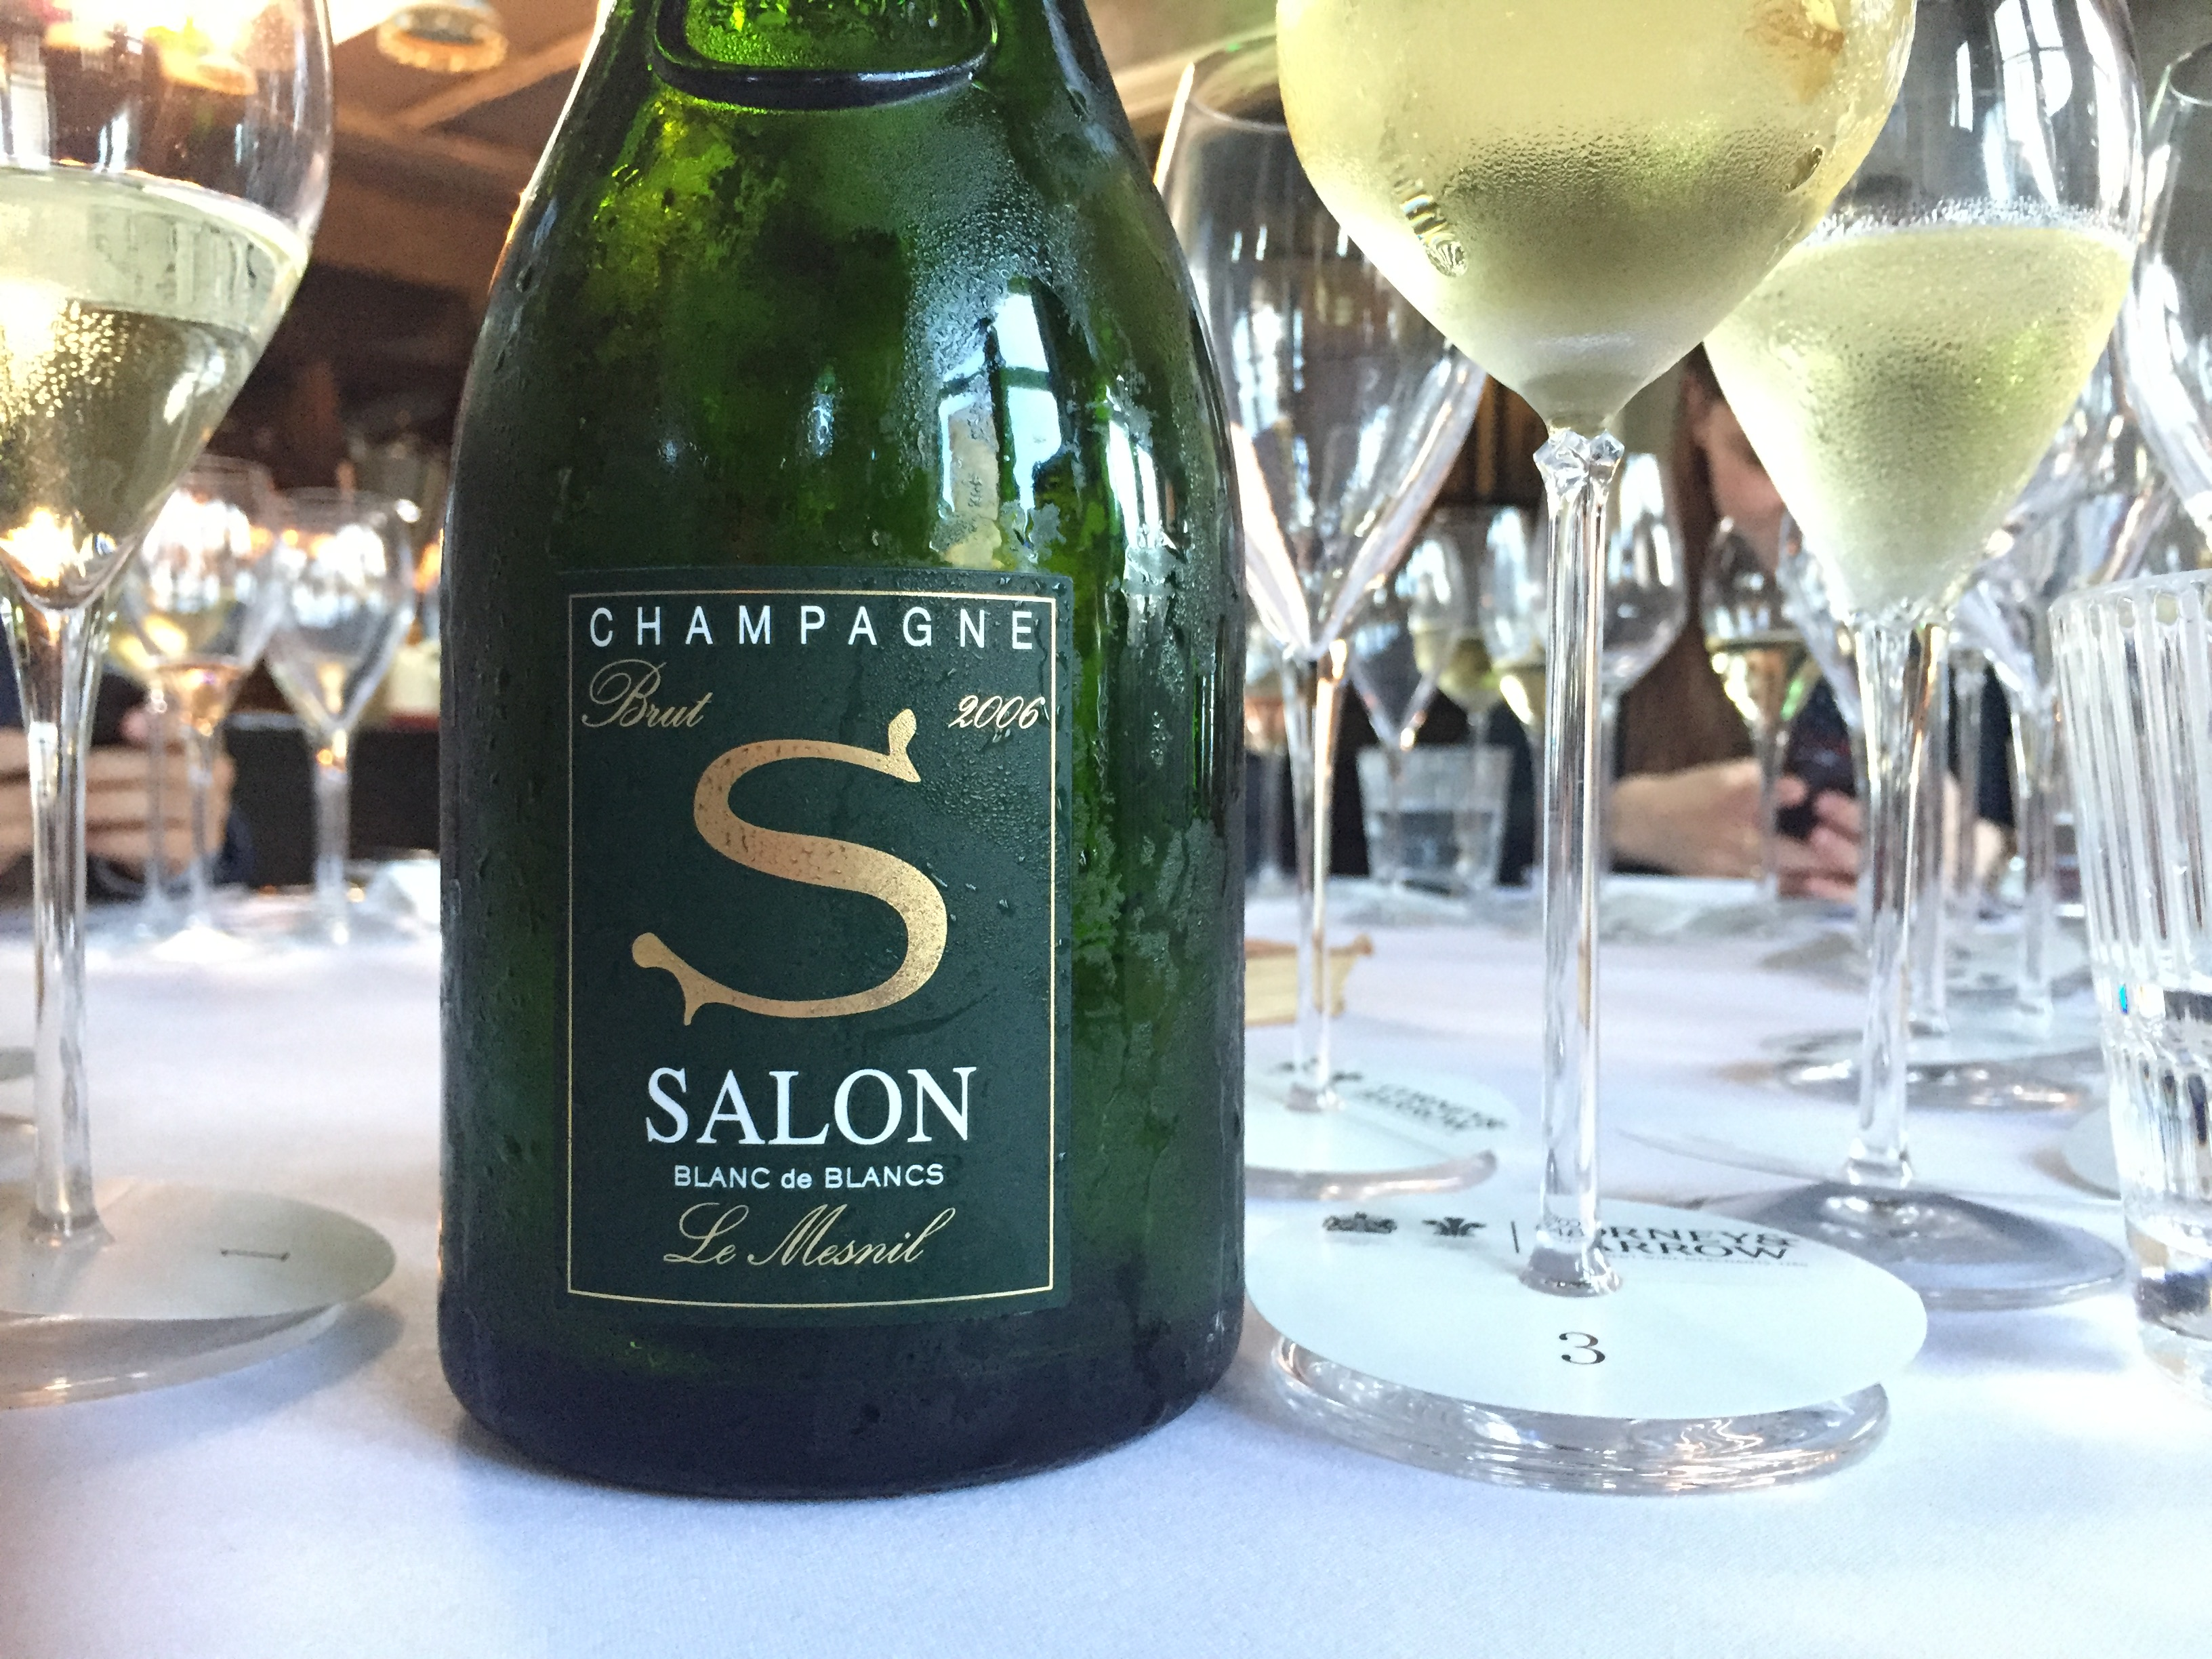 Salon Le Mesnil Blanc de Blancs 2006 - Buy Champagne same day 2 hour ...